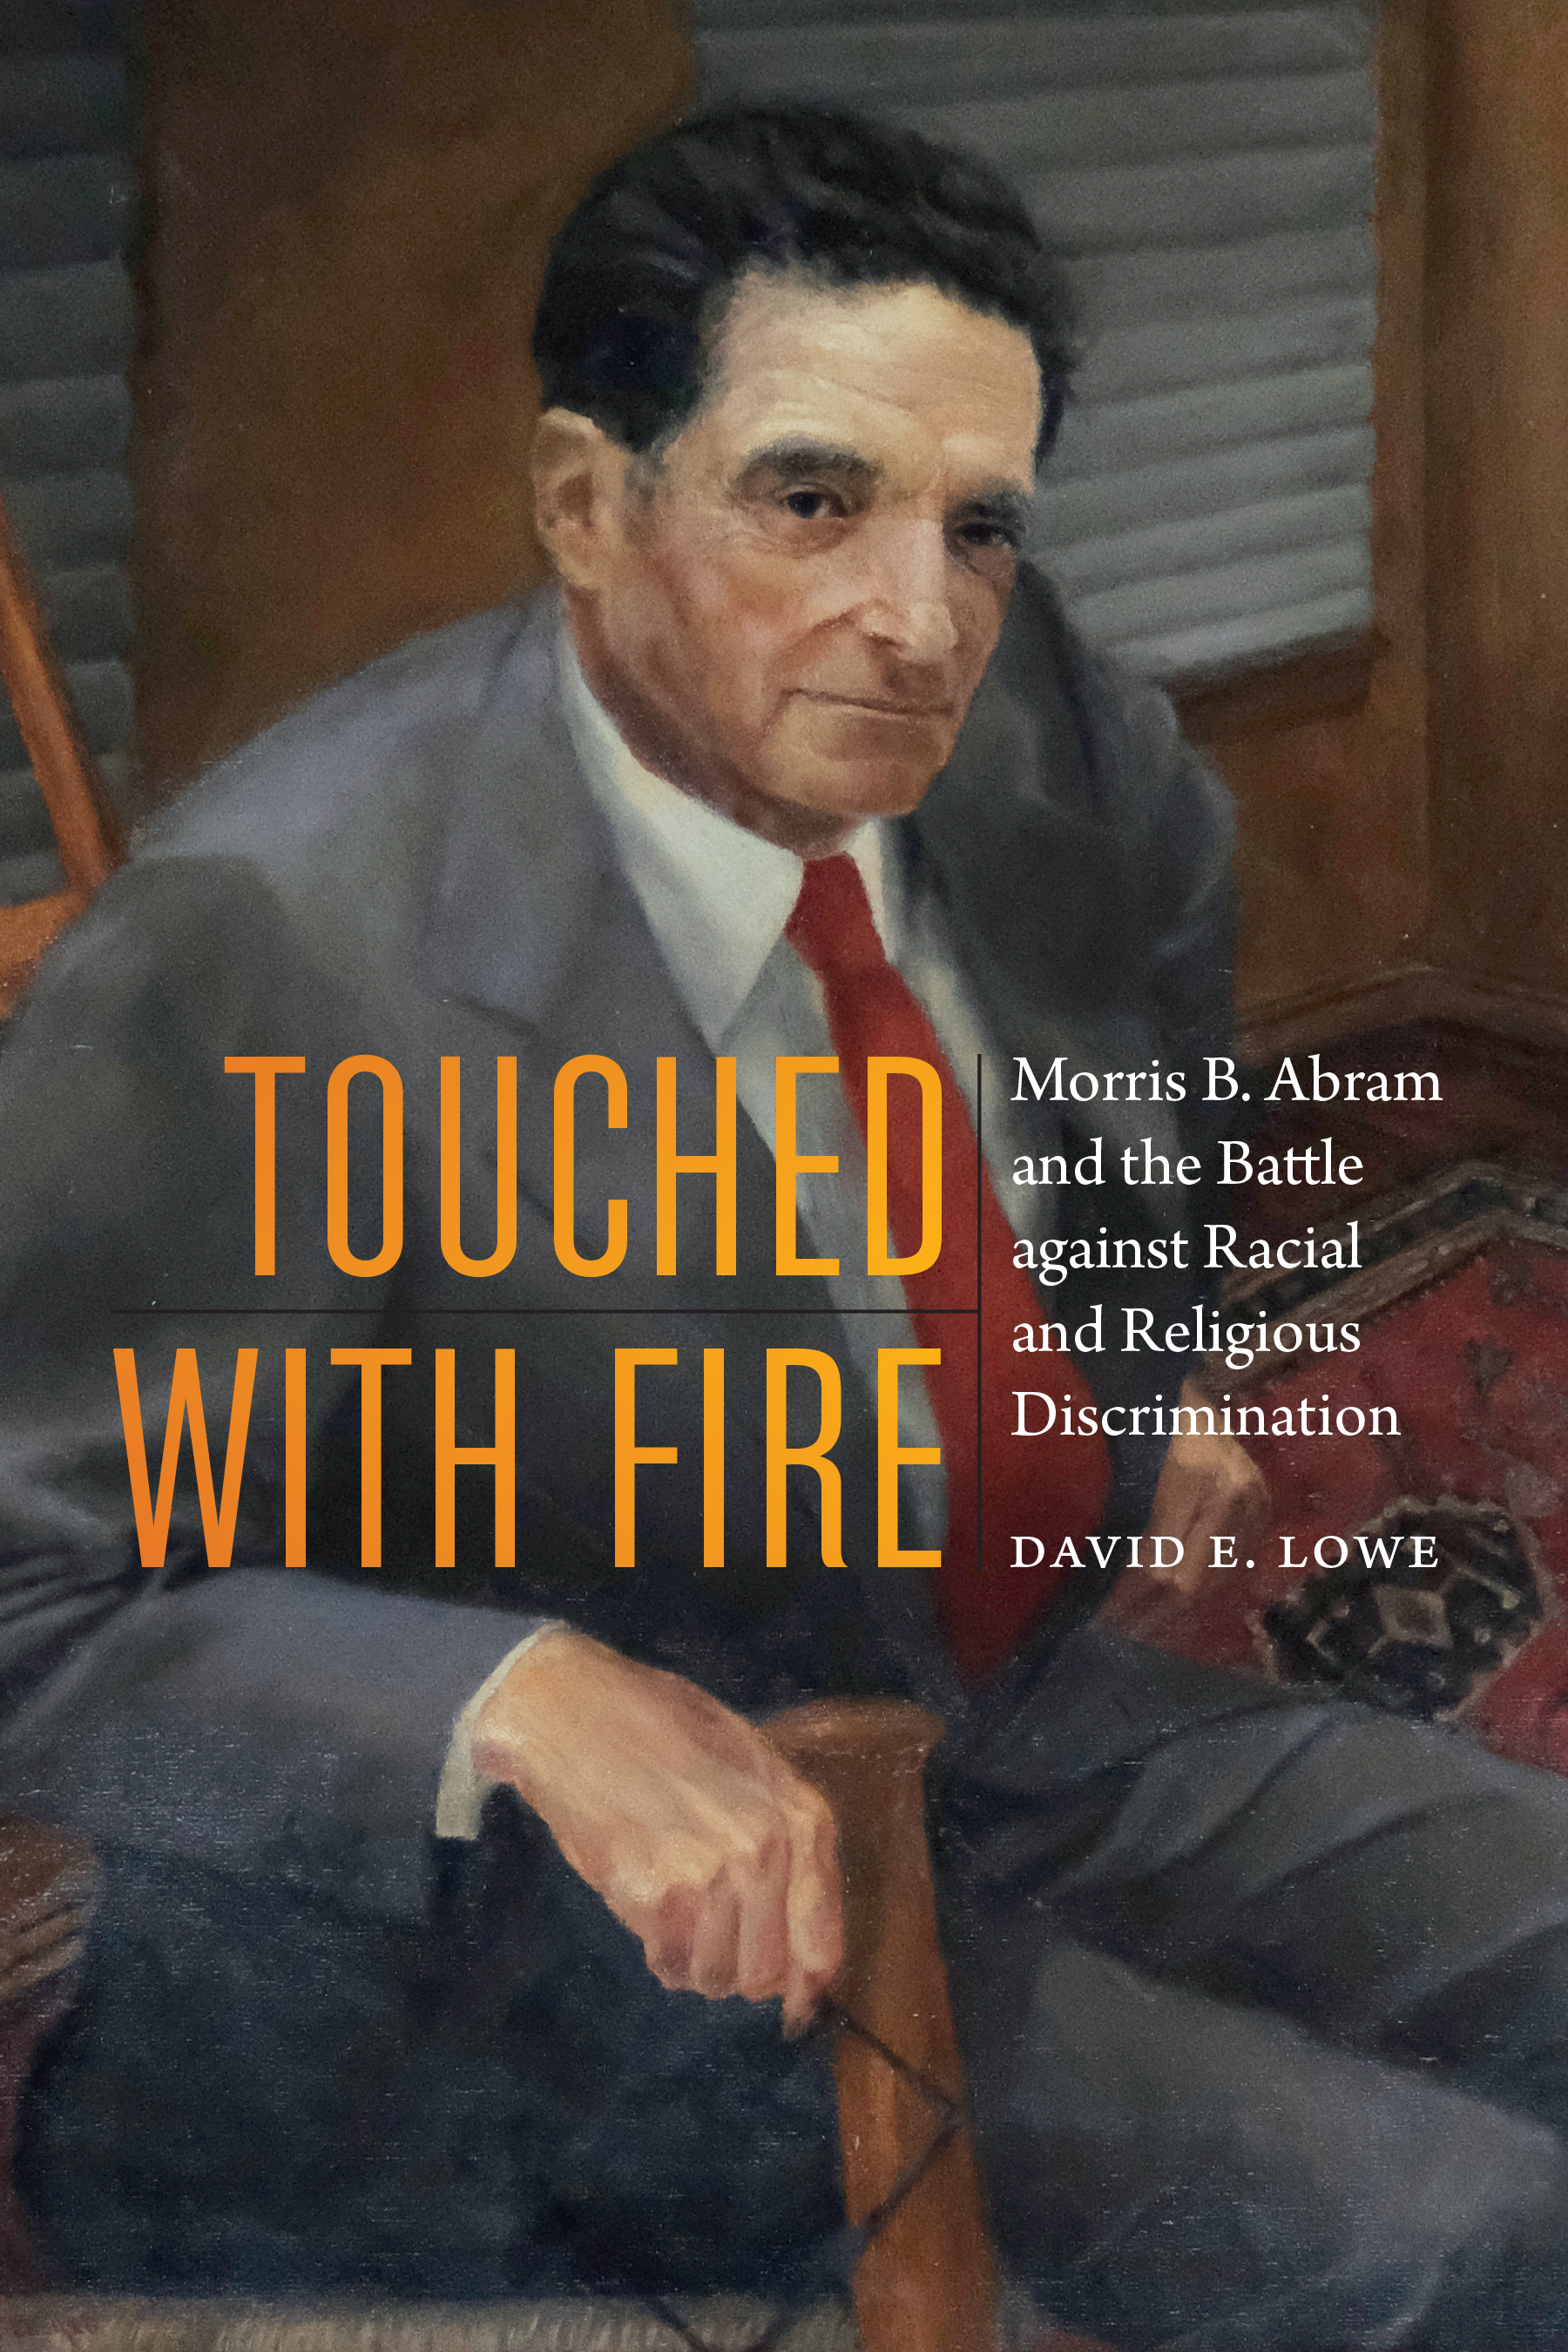 [PDF] [EPUB] Touched with Fire: Morris B. Abram and the Battle against Racial and Religious Discrimination Download by David E. Lowe